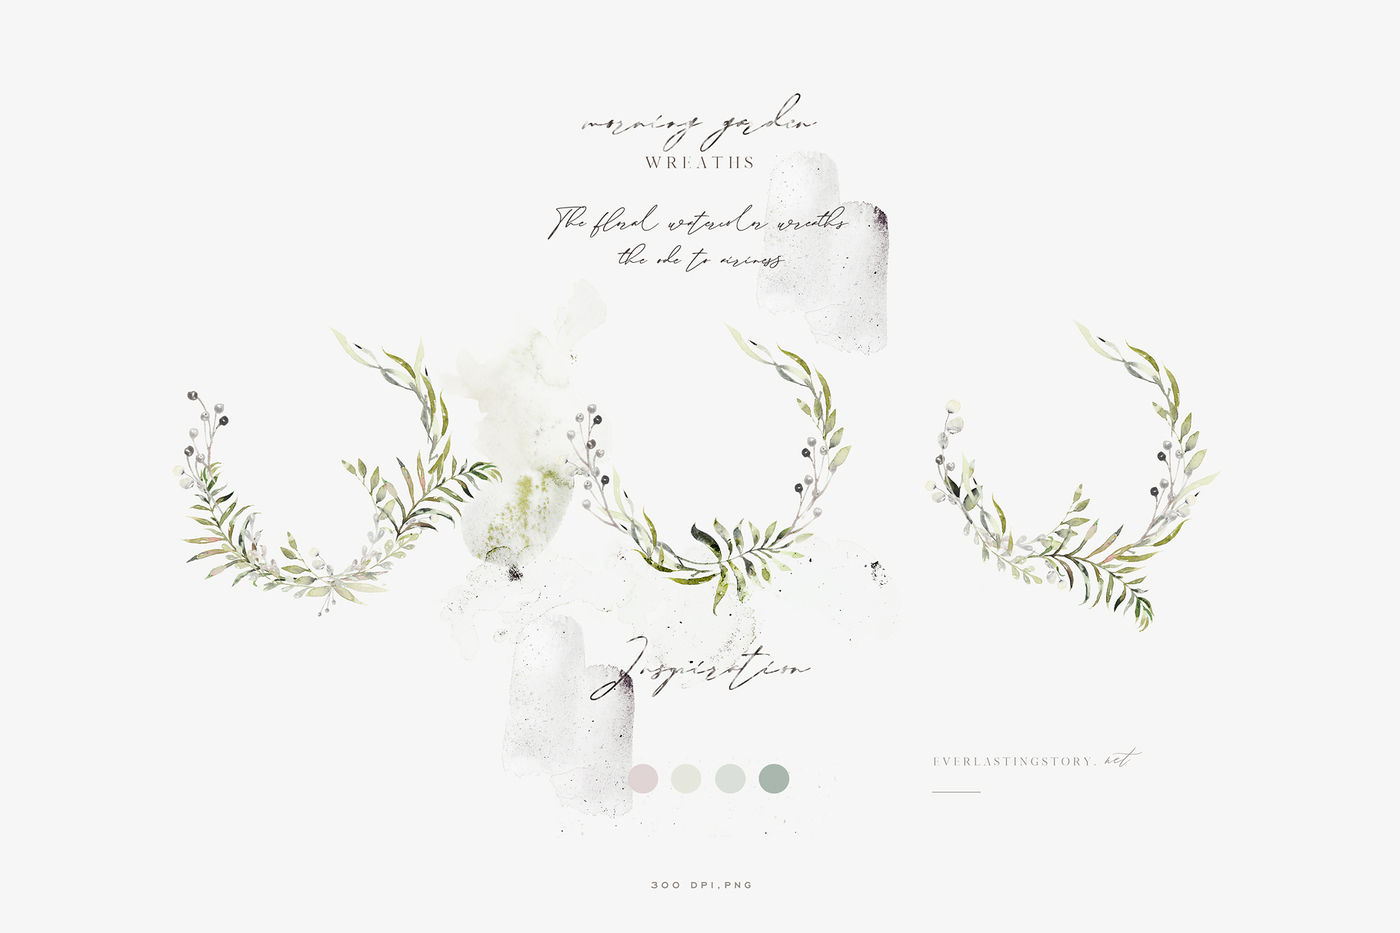 Evergarden  Alphabets&Graphics By The Everlasting Story